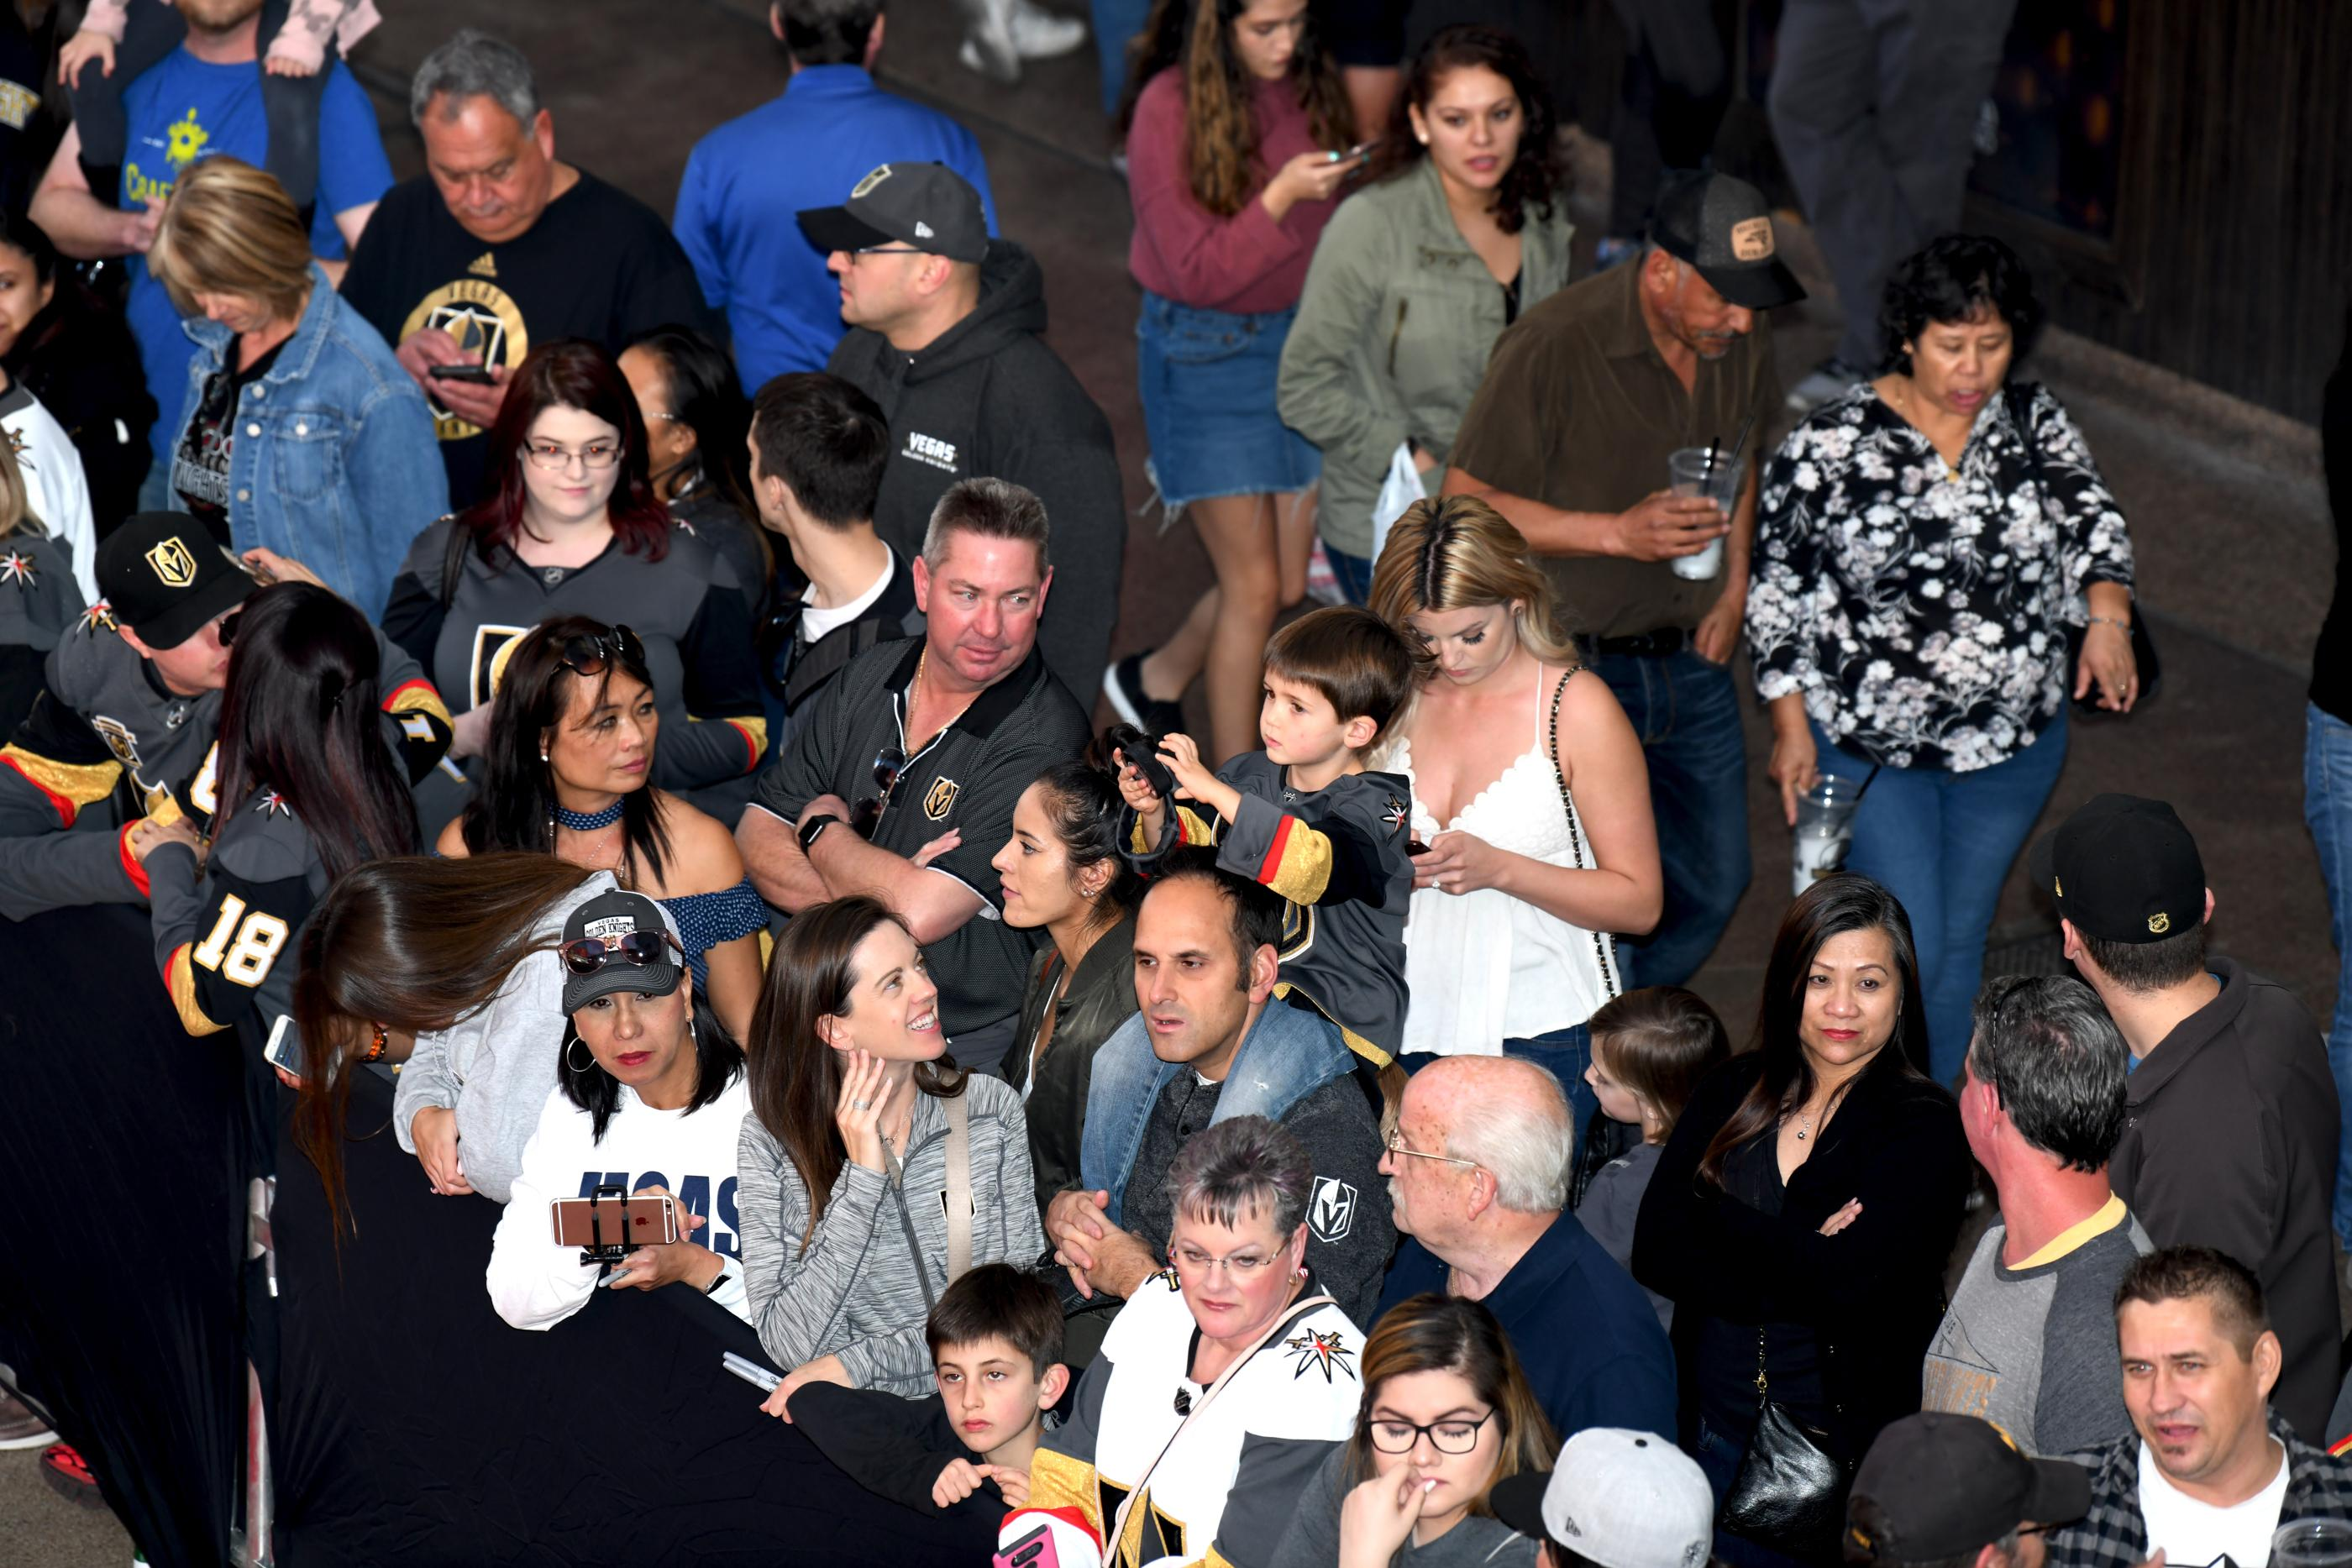 The Las Vegas Golden Knights host a Fan Fest with the D Las Vegas and Fremont Street Experience. In this photo fans await the arrival of the Las Vegas Golden Knights hockey team. Sunday, January 14, 2017. CREDIT: Glenn Pinkerton/Las Vegas News Bureau